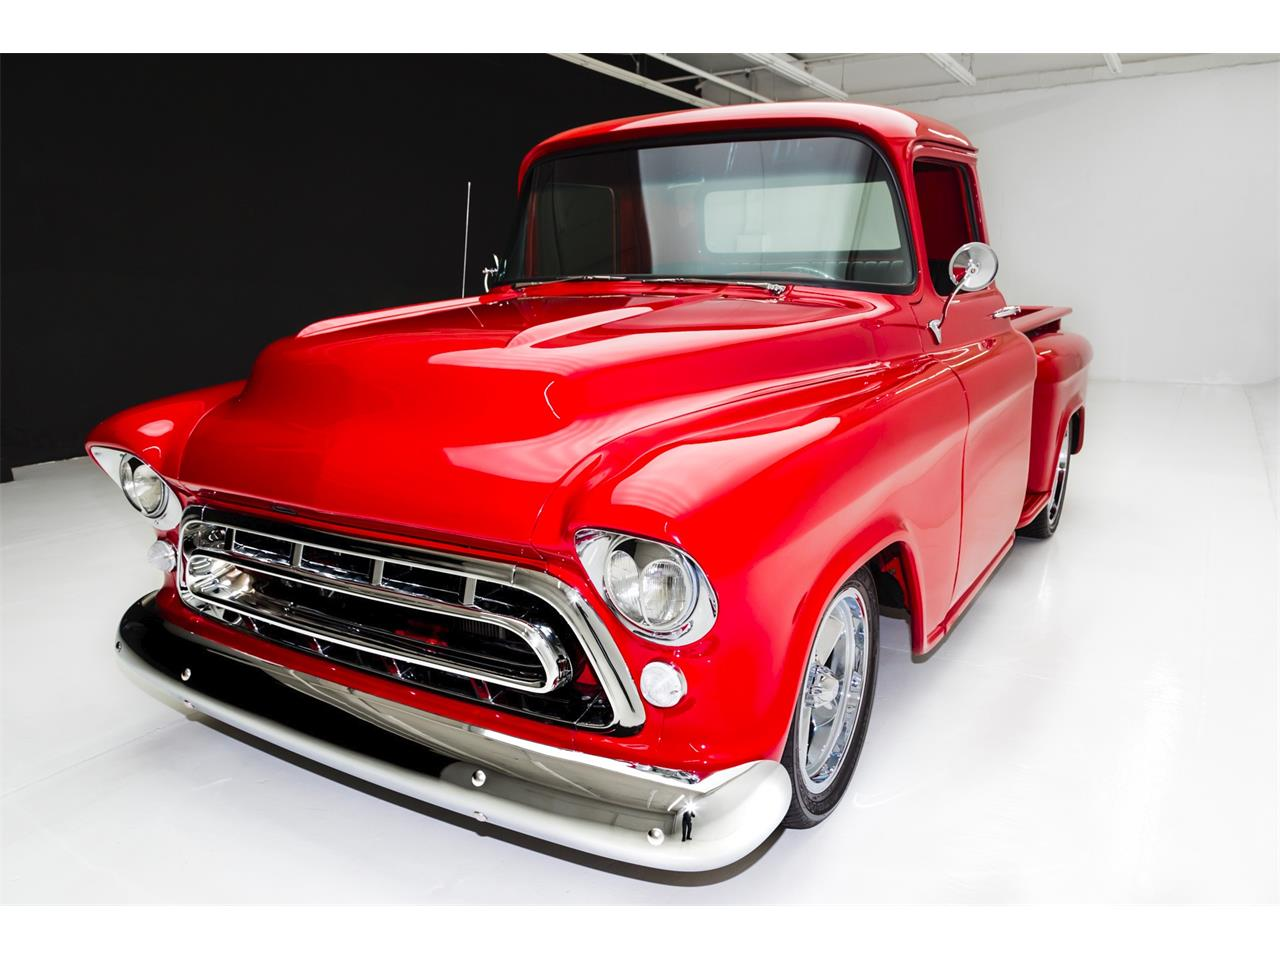 Large Picture of 1957 Chevrolet Pickup - $59,900.00 - KM69